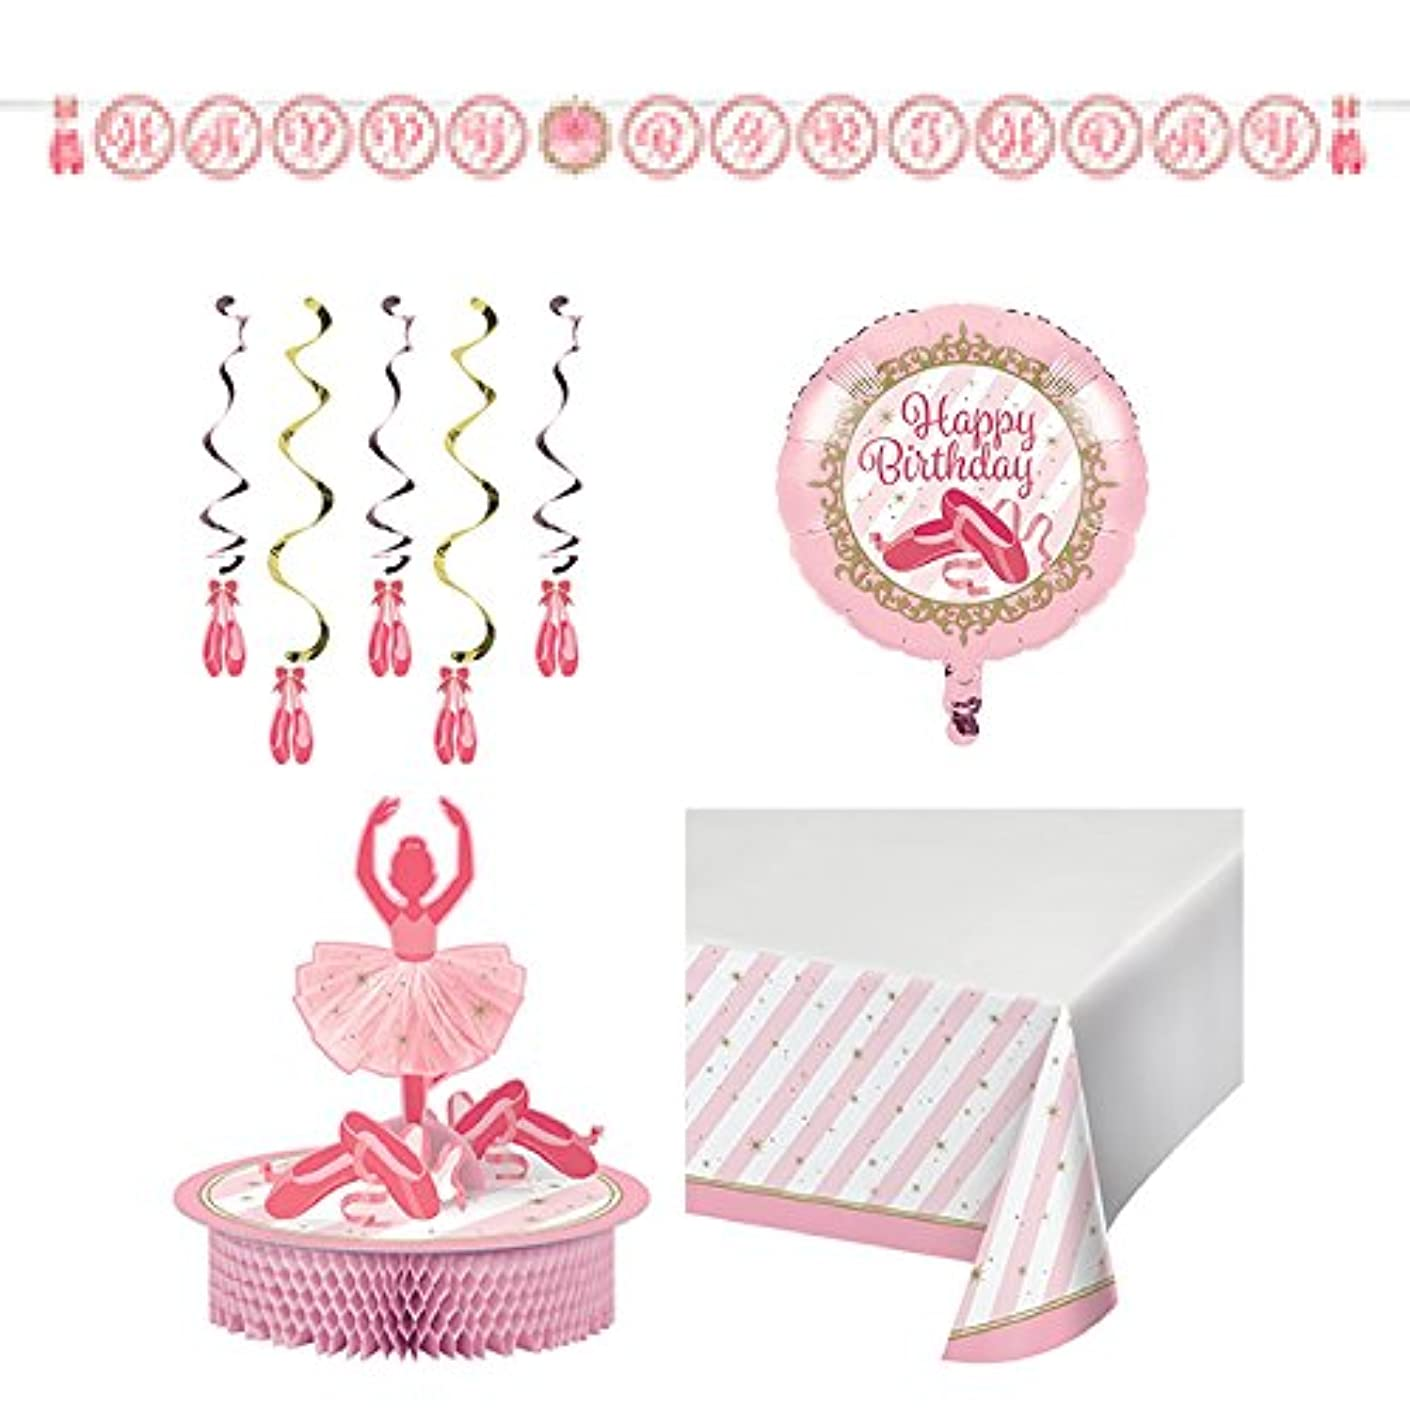 Twinkle Toes Party Decorations Pack (1 Twinkle Toes Banner, 1 Twinkle Toes Set of Swirls, 1 Twinkle Toes Foil Balloon, 1 Twinkle Toes Centerpiece, 1 Twinkle Toes Table Cover)